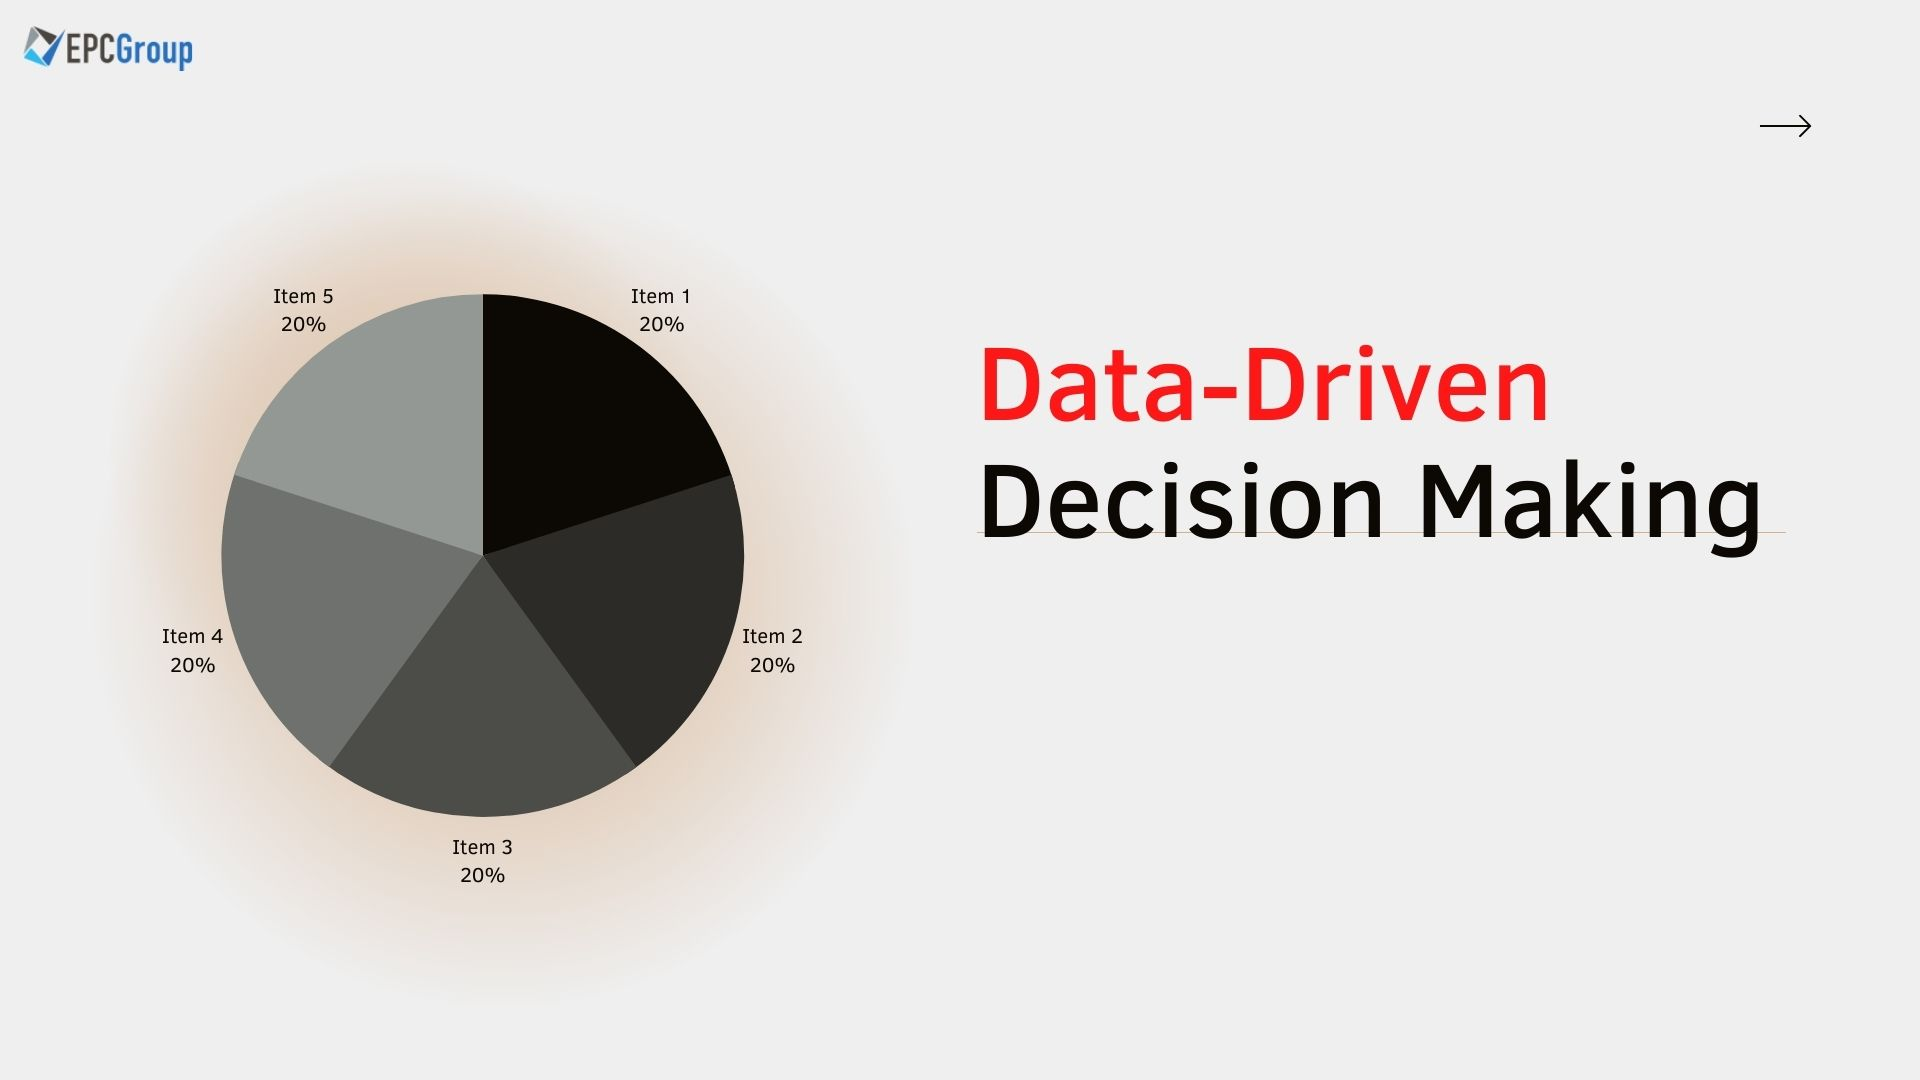 Why Is Data-Driven Decision Is Gaining Trends - thumb image